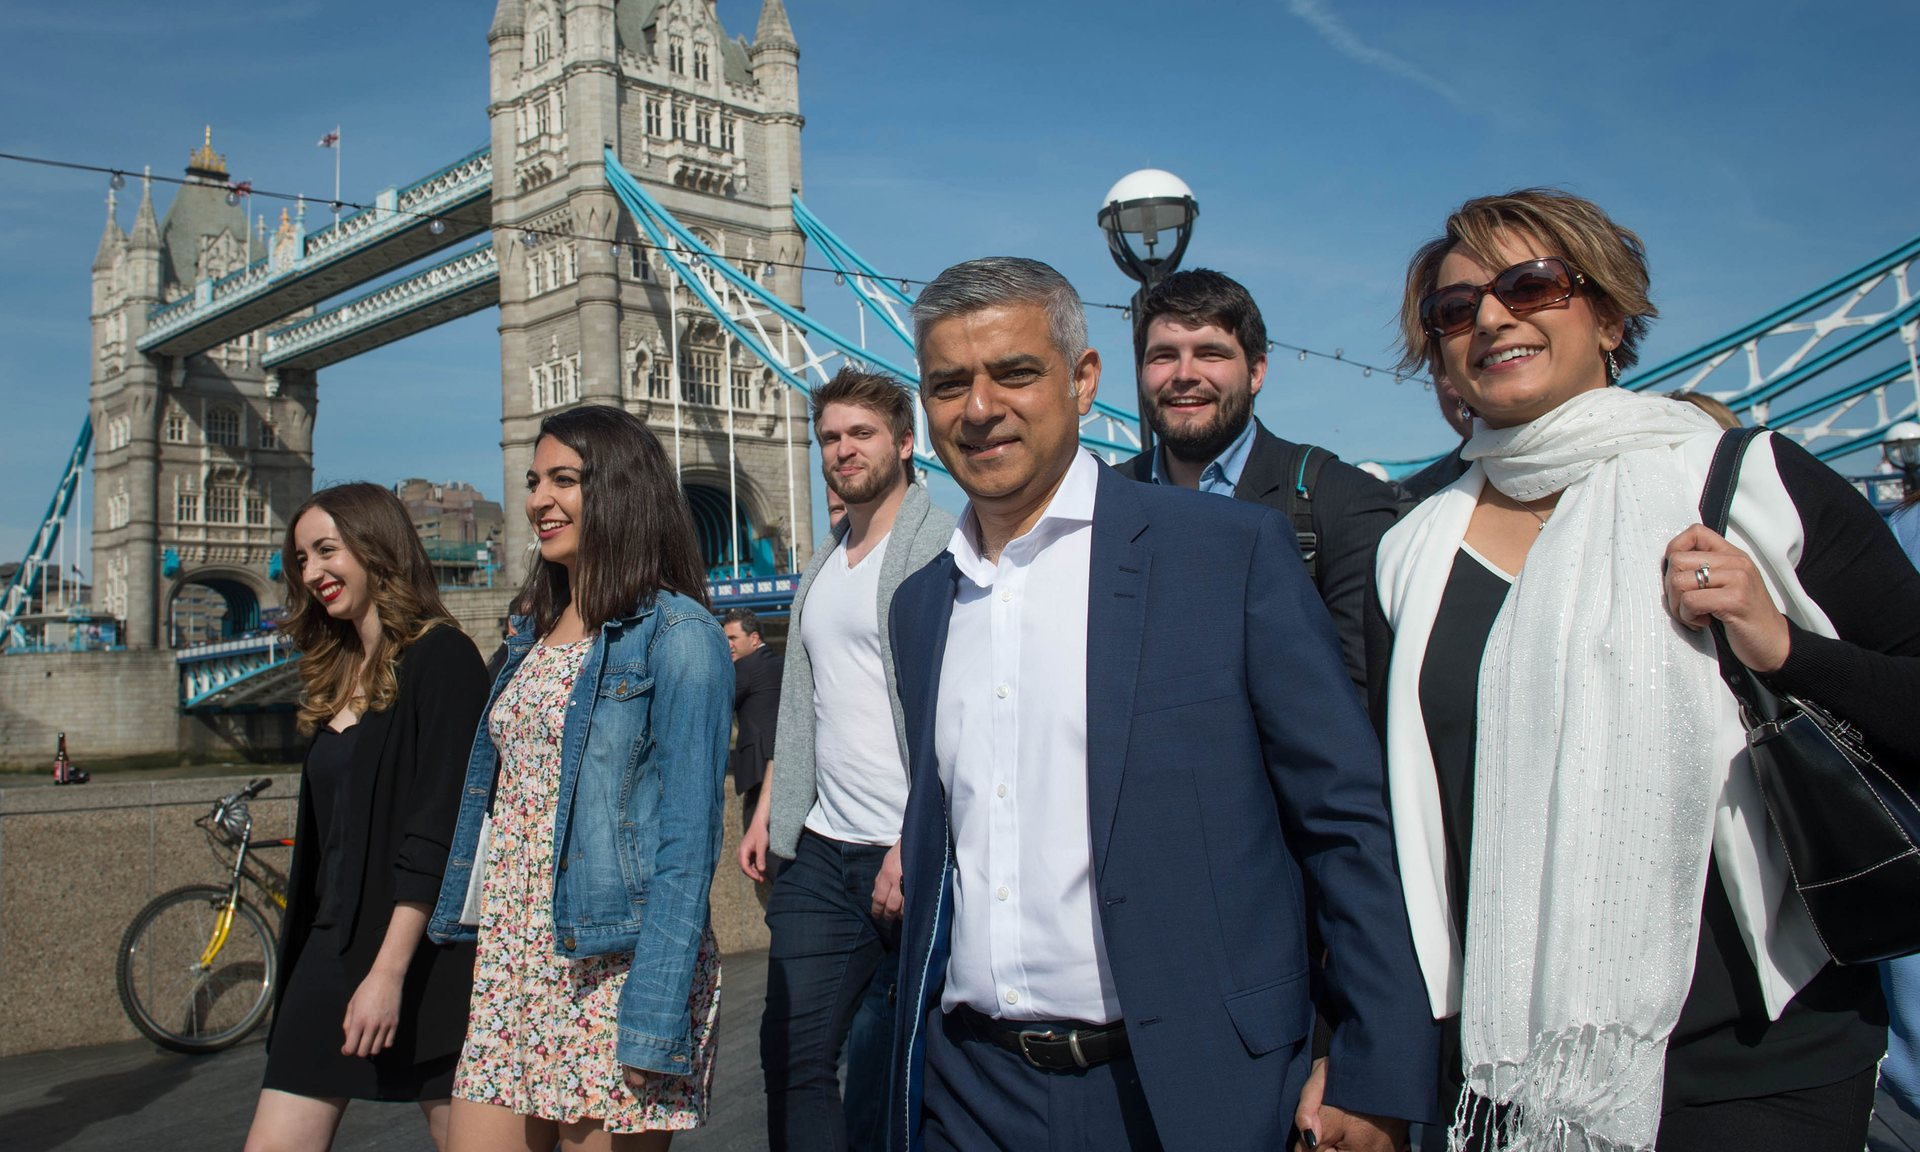 Sadiq Khan, Photo by The Guardian